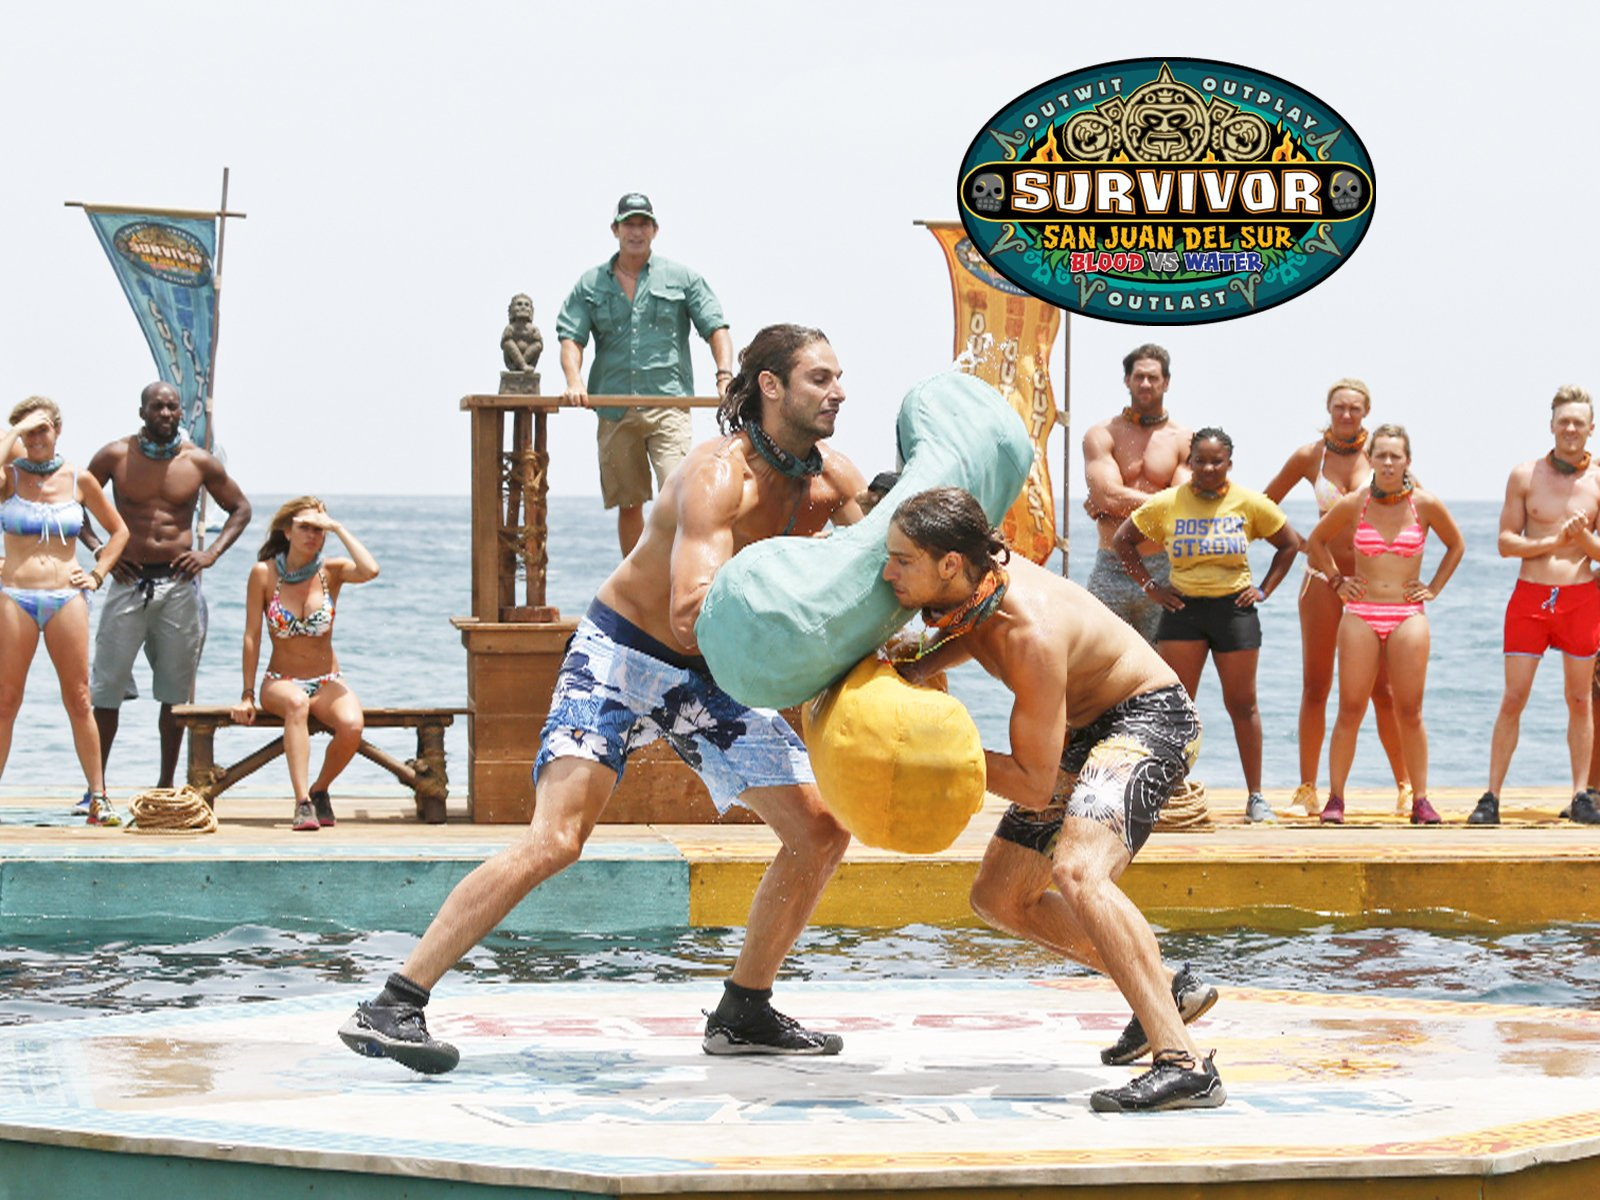 Amazon com: Watch Survivor, Season 29 (San Juan Del Sur) | Prime Video